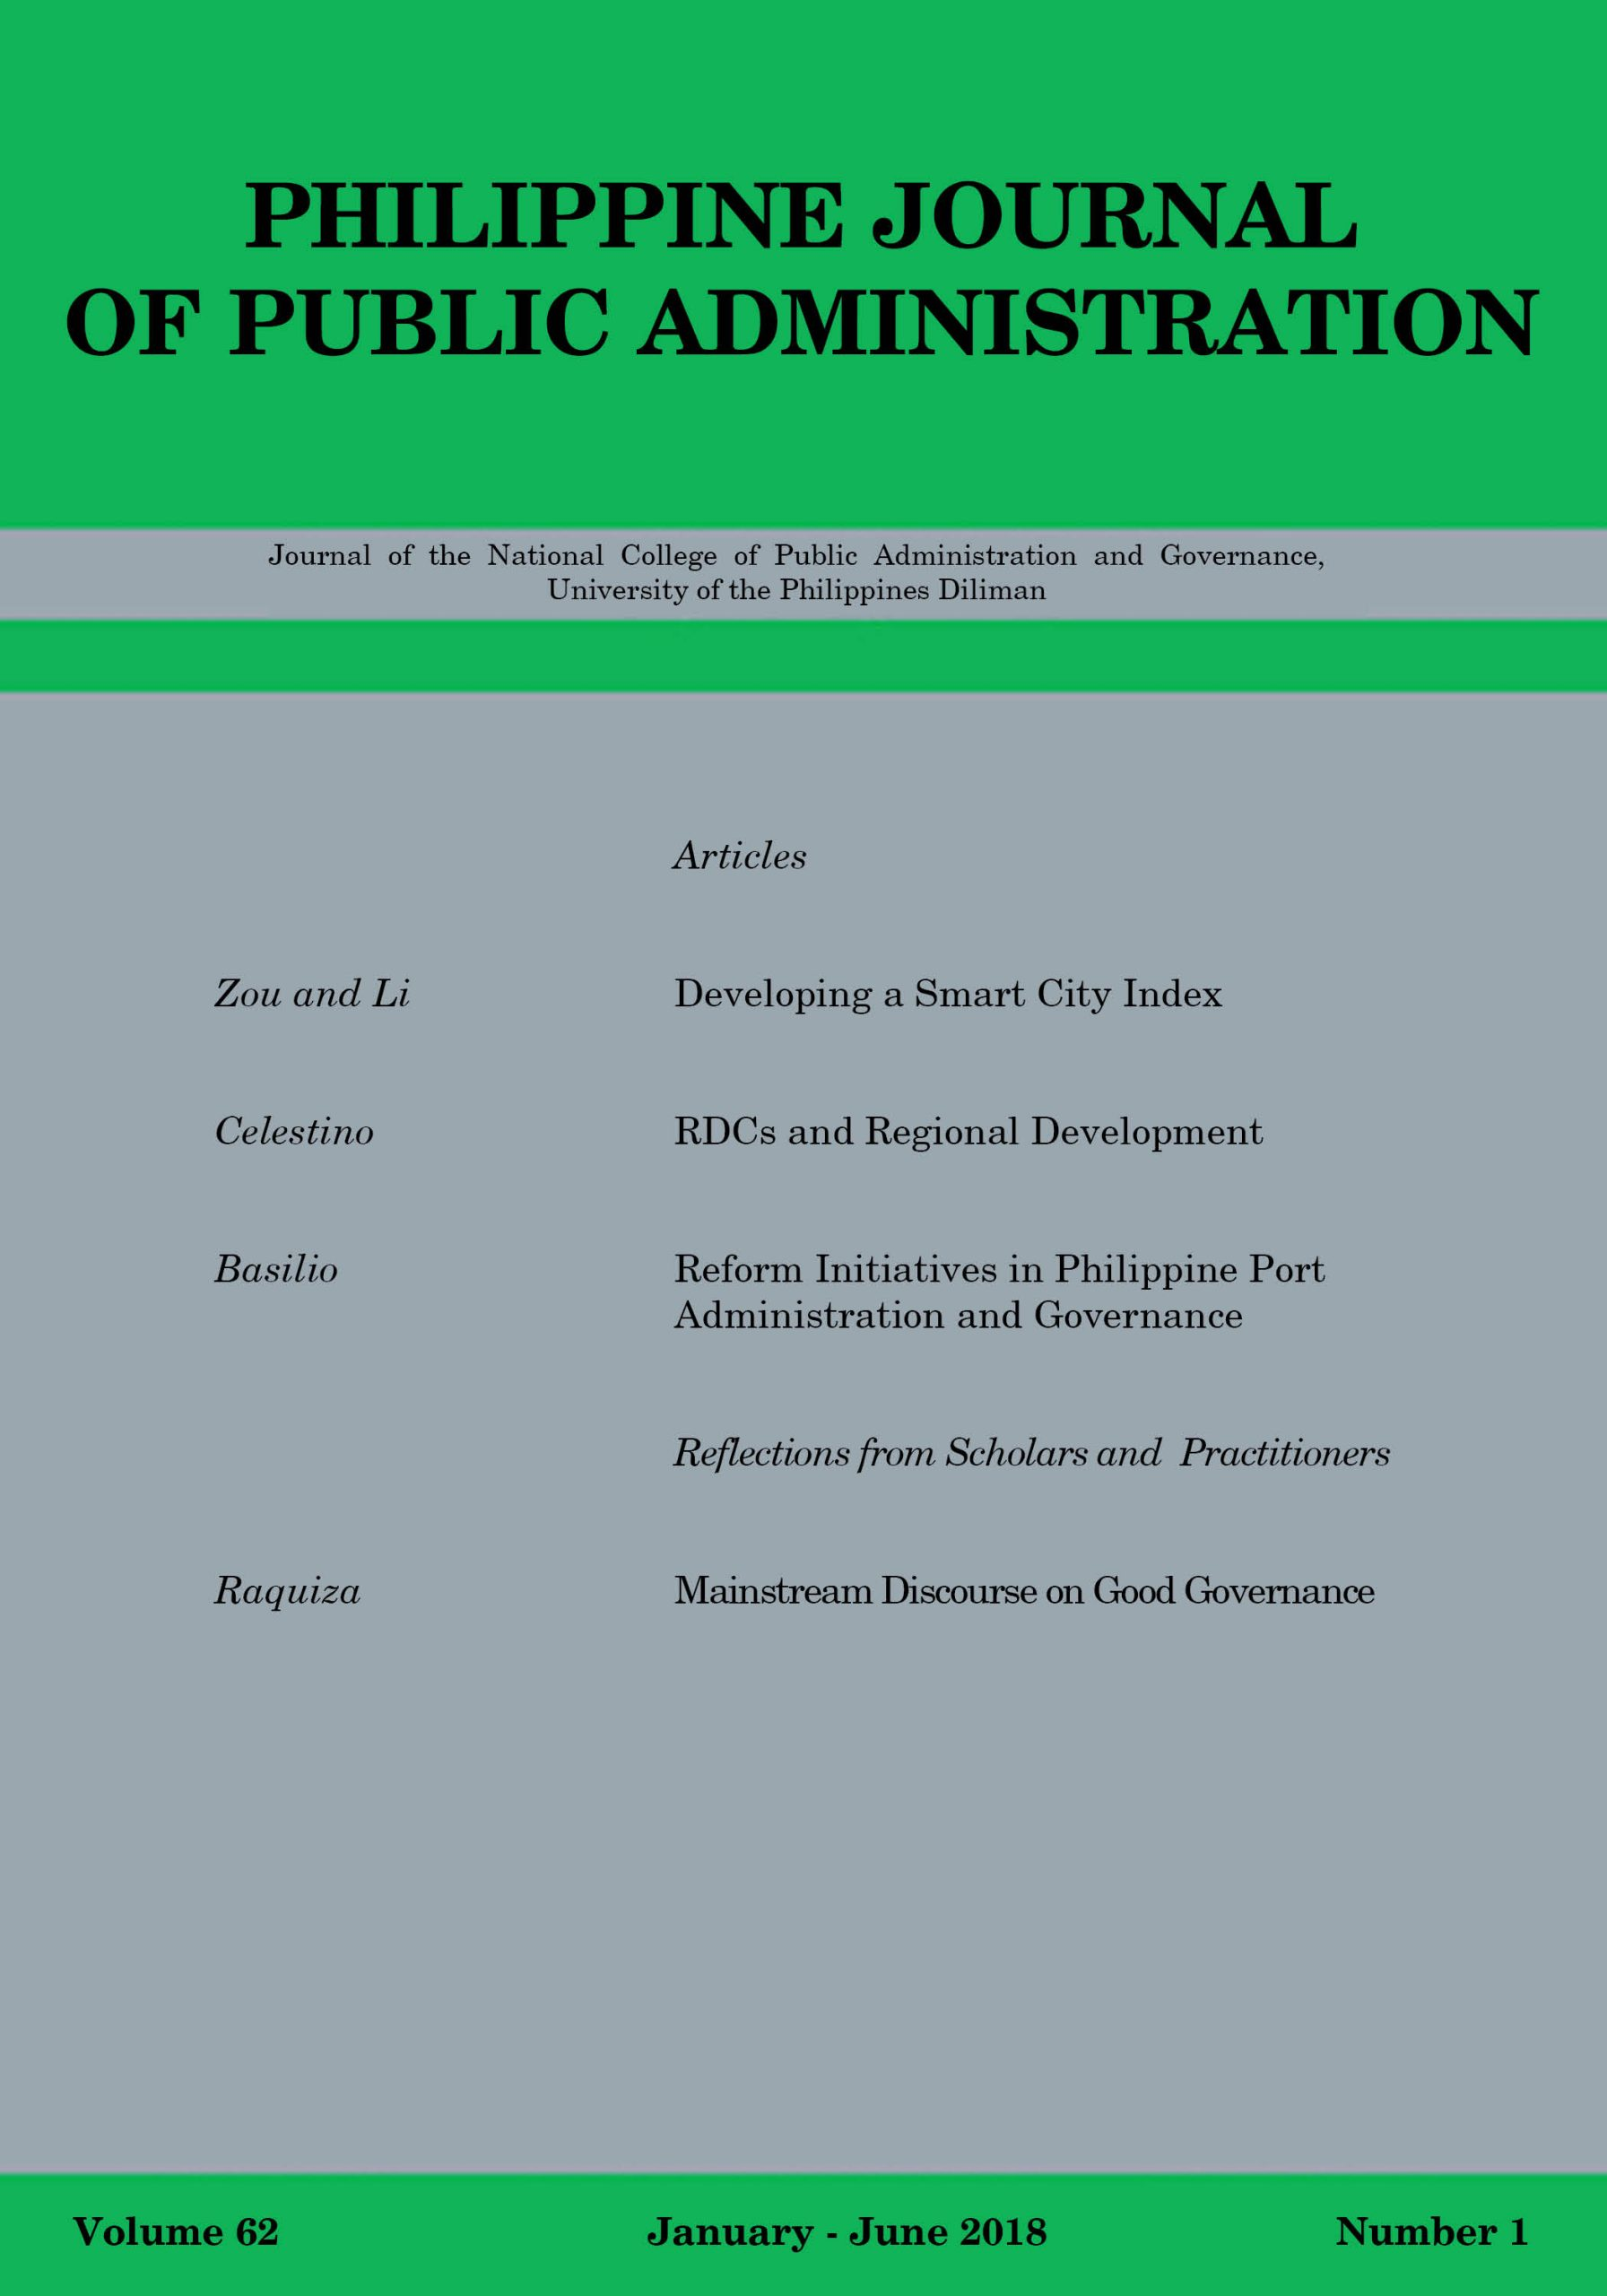 Phil. Journal of Public Administration Vol. 62, No. 1